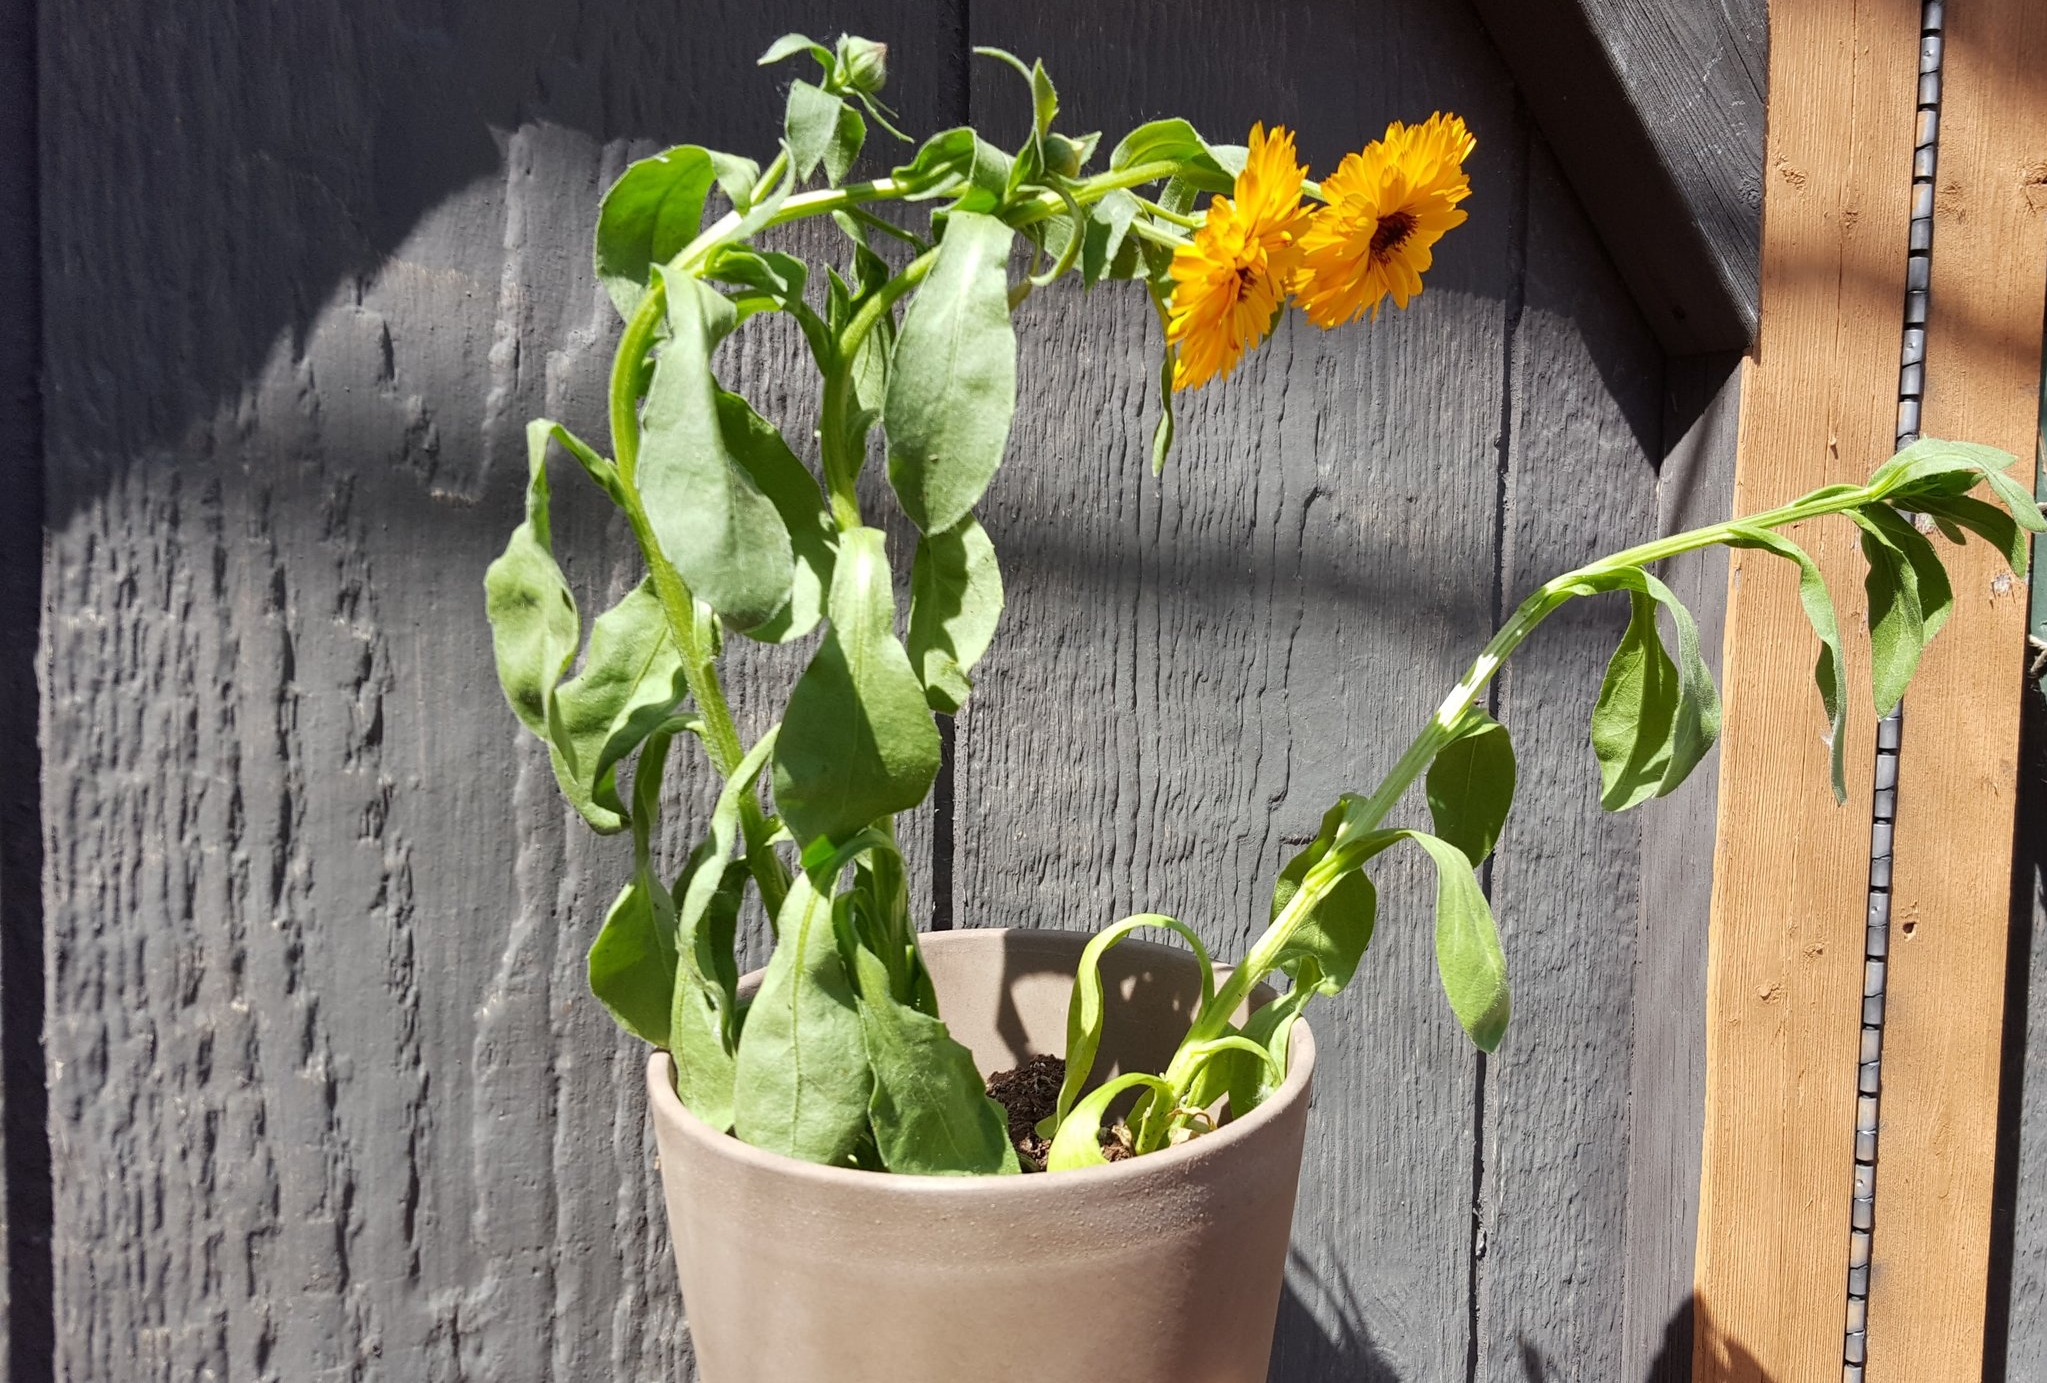 Too dry! Don't let your annuals wilt.